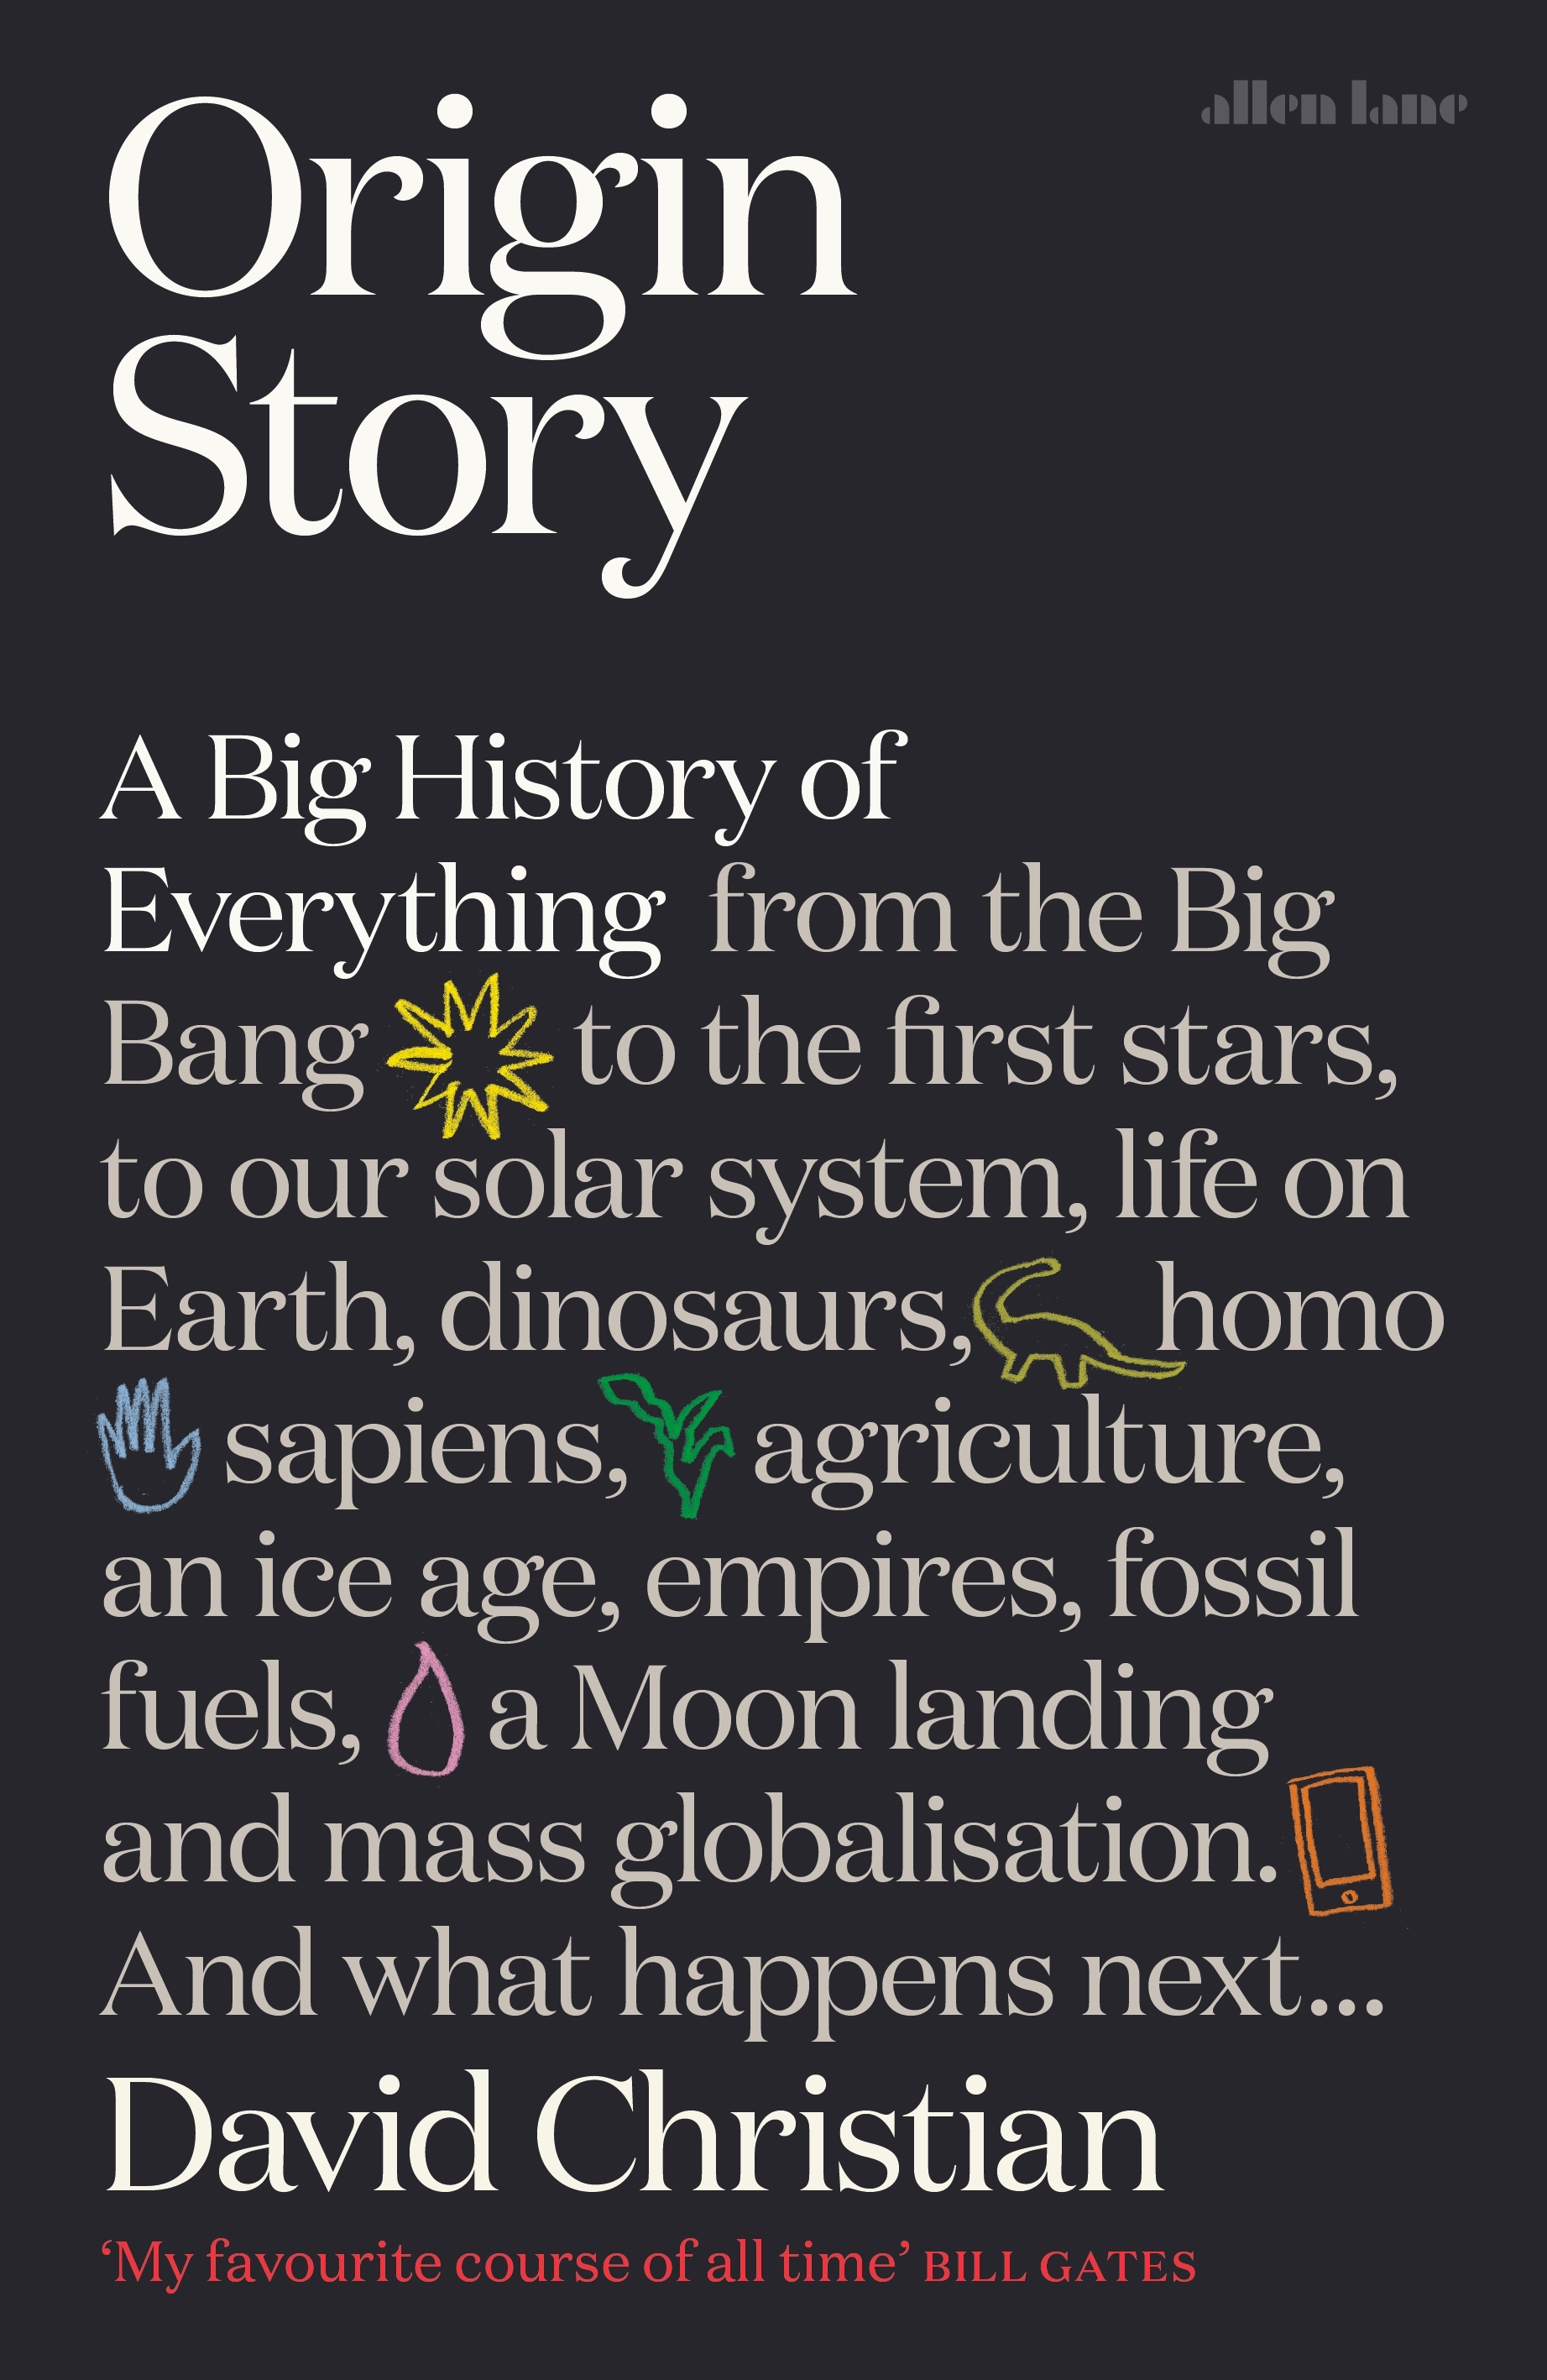 Origin Story by David Christian, ISBN: 9780241254684